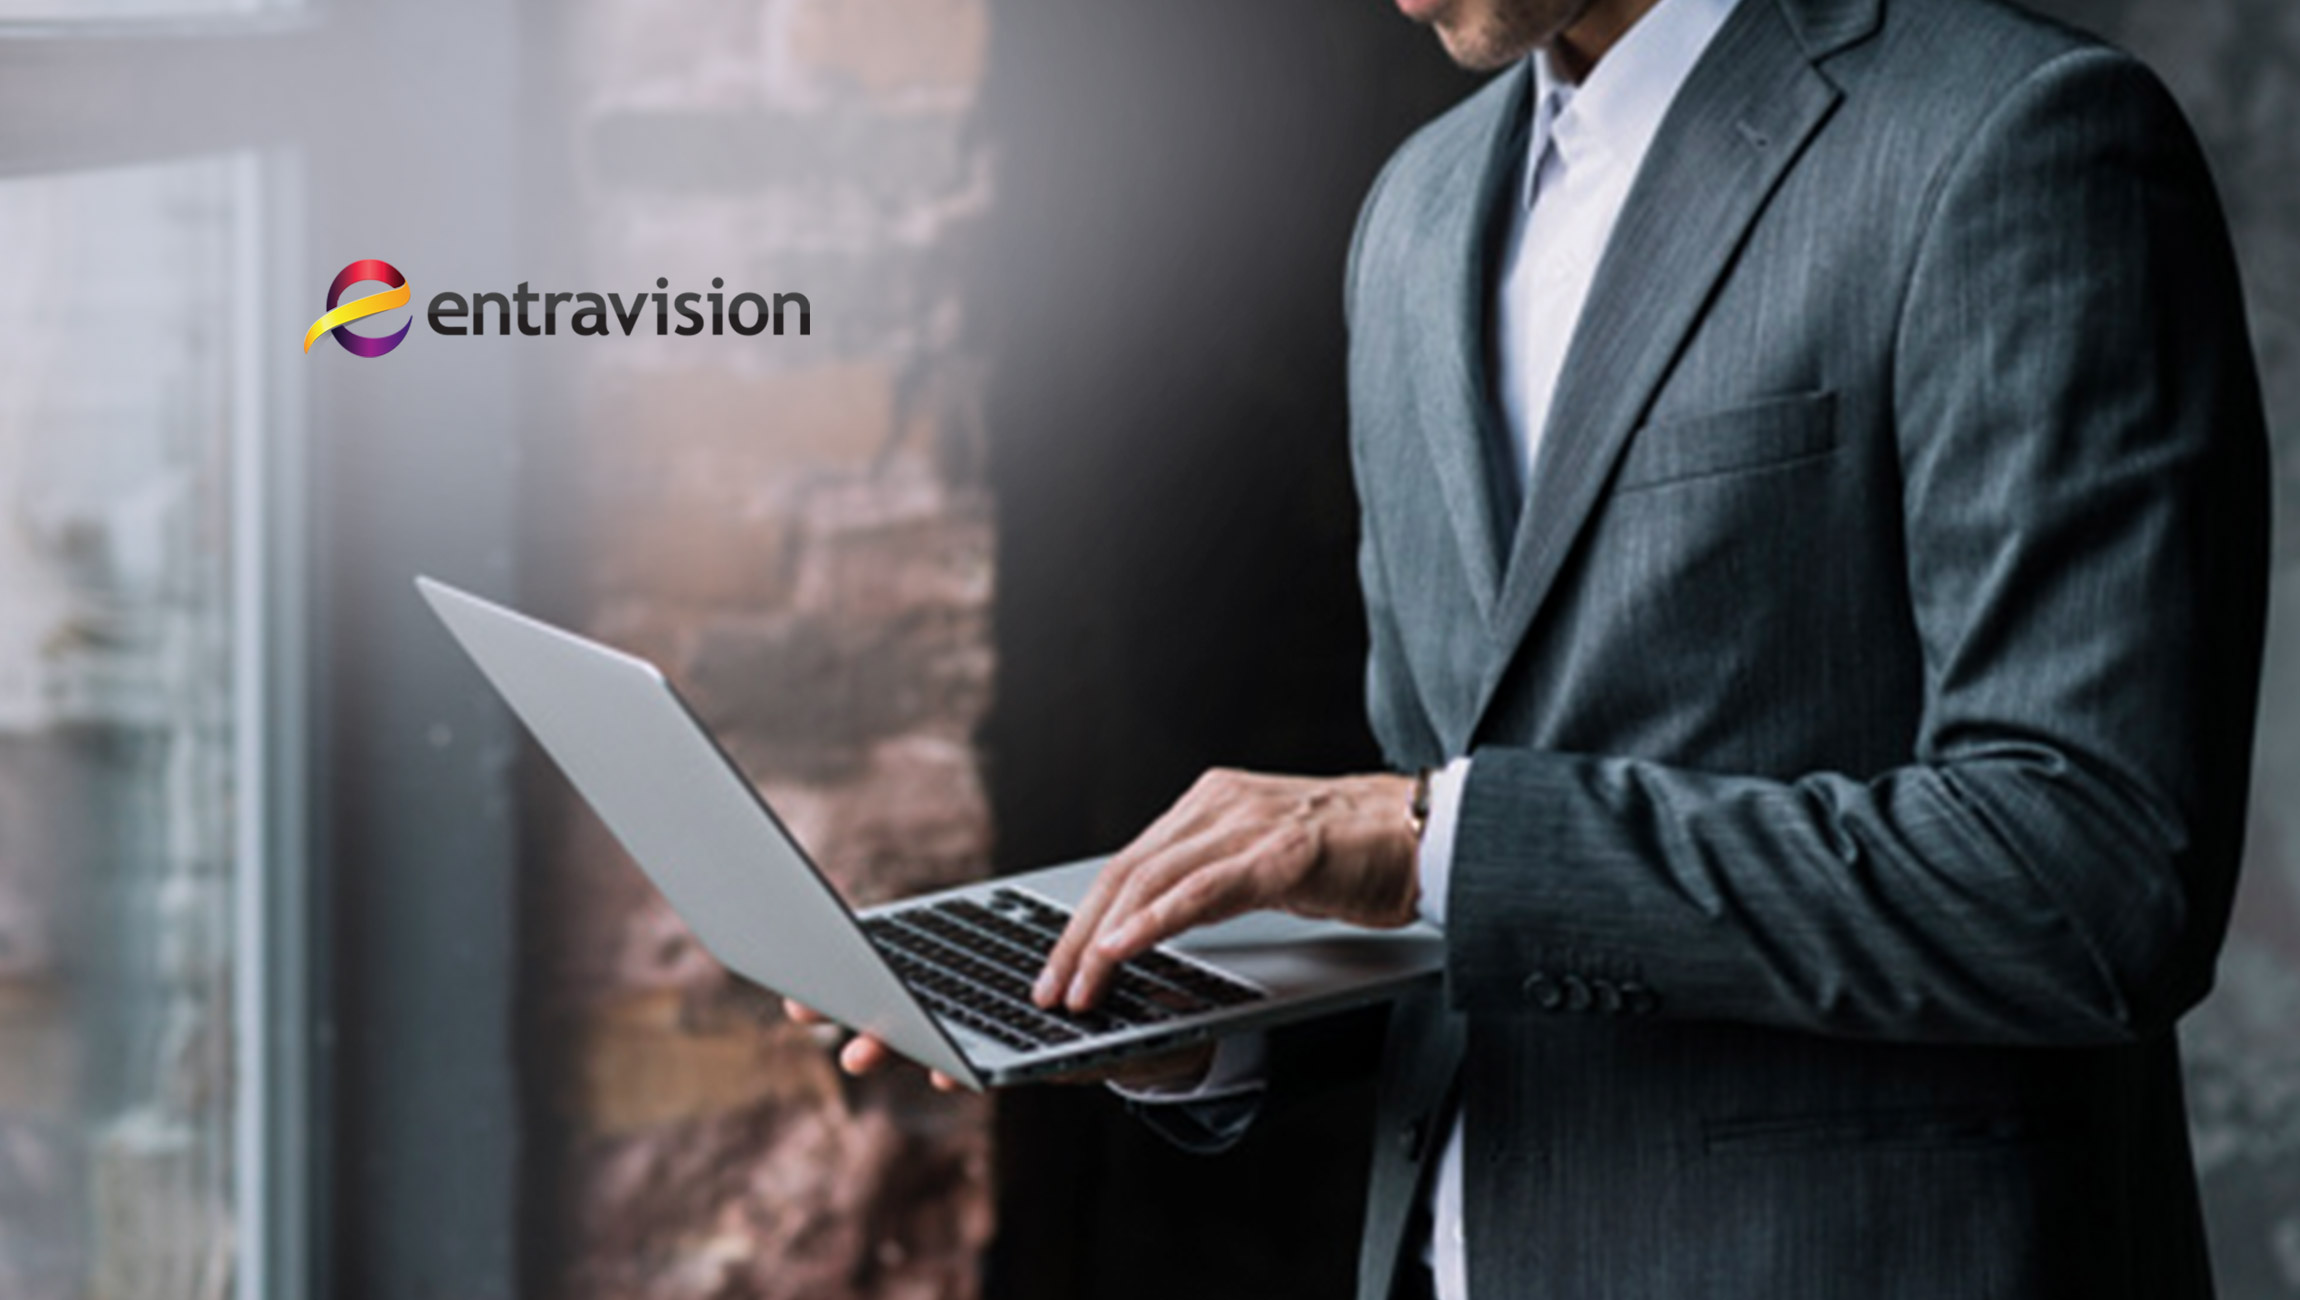 Entravision Appoints Karl Alonso Meyer as Chief Revenue and Product Officer